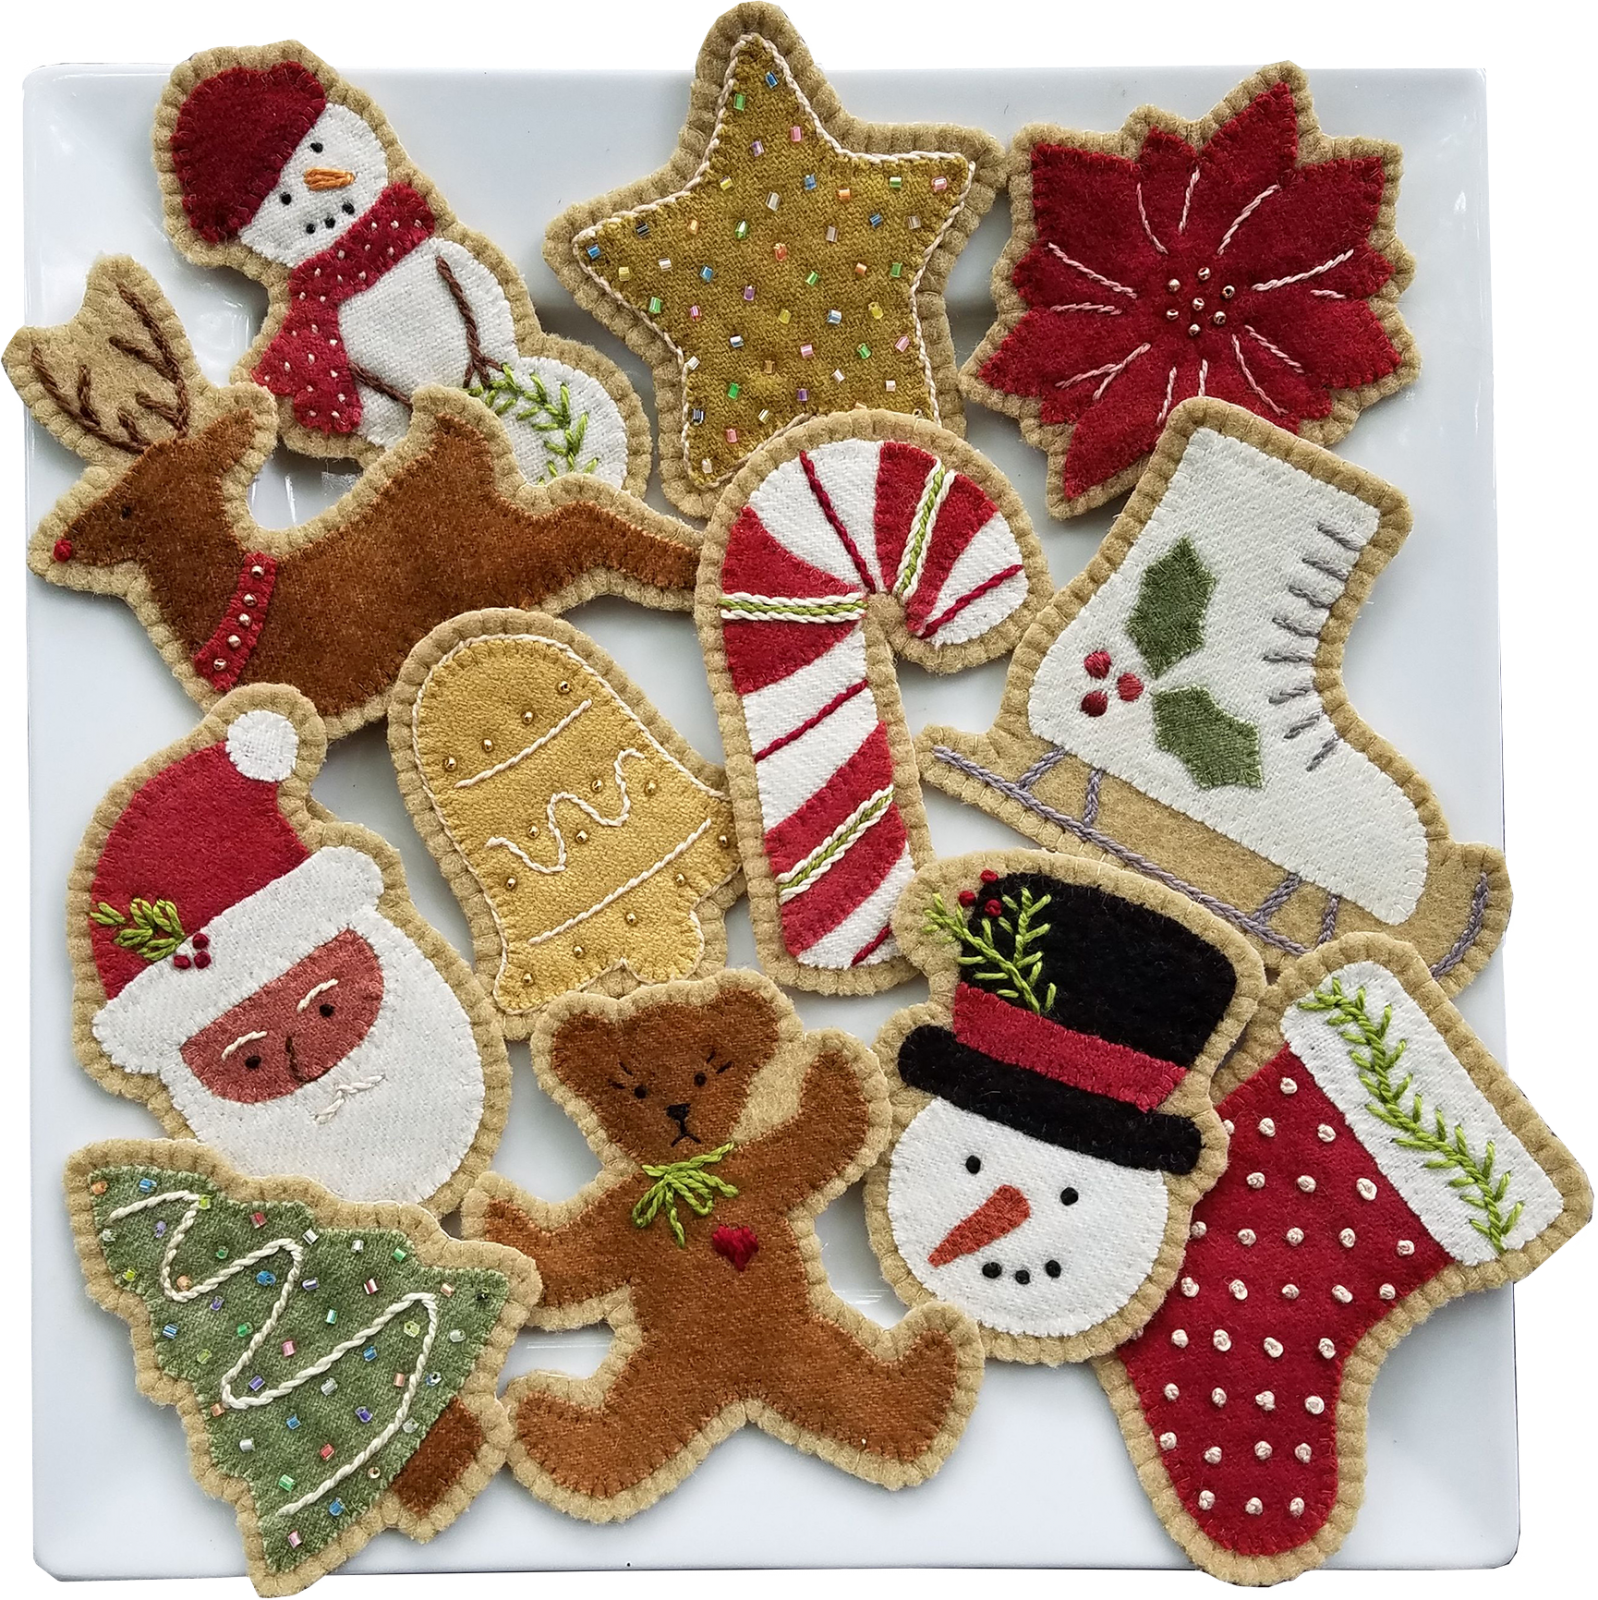 1822 Sugar Cookie Ornaments